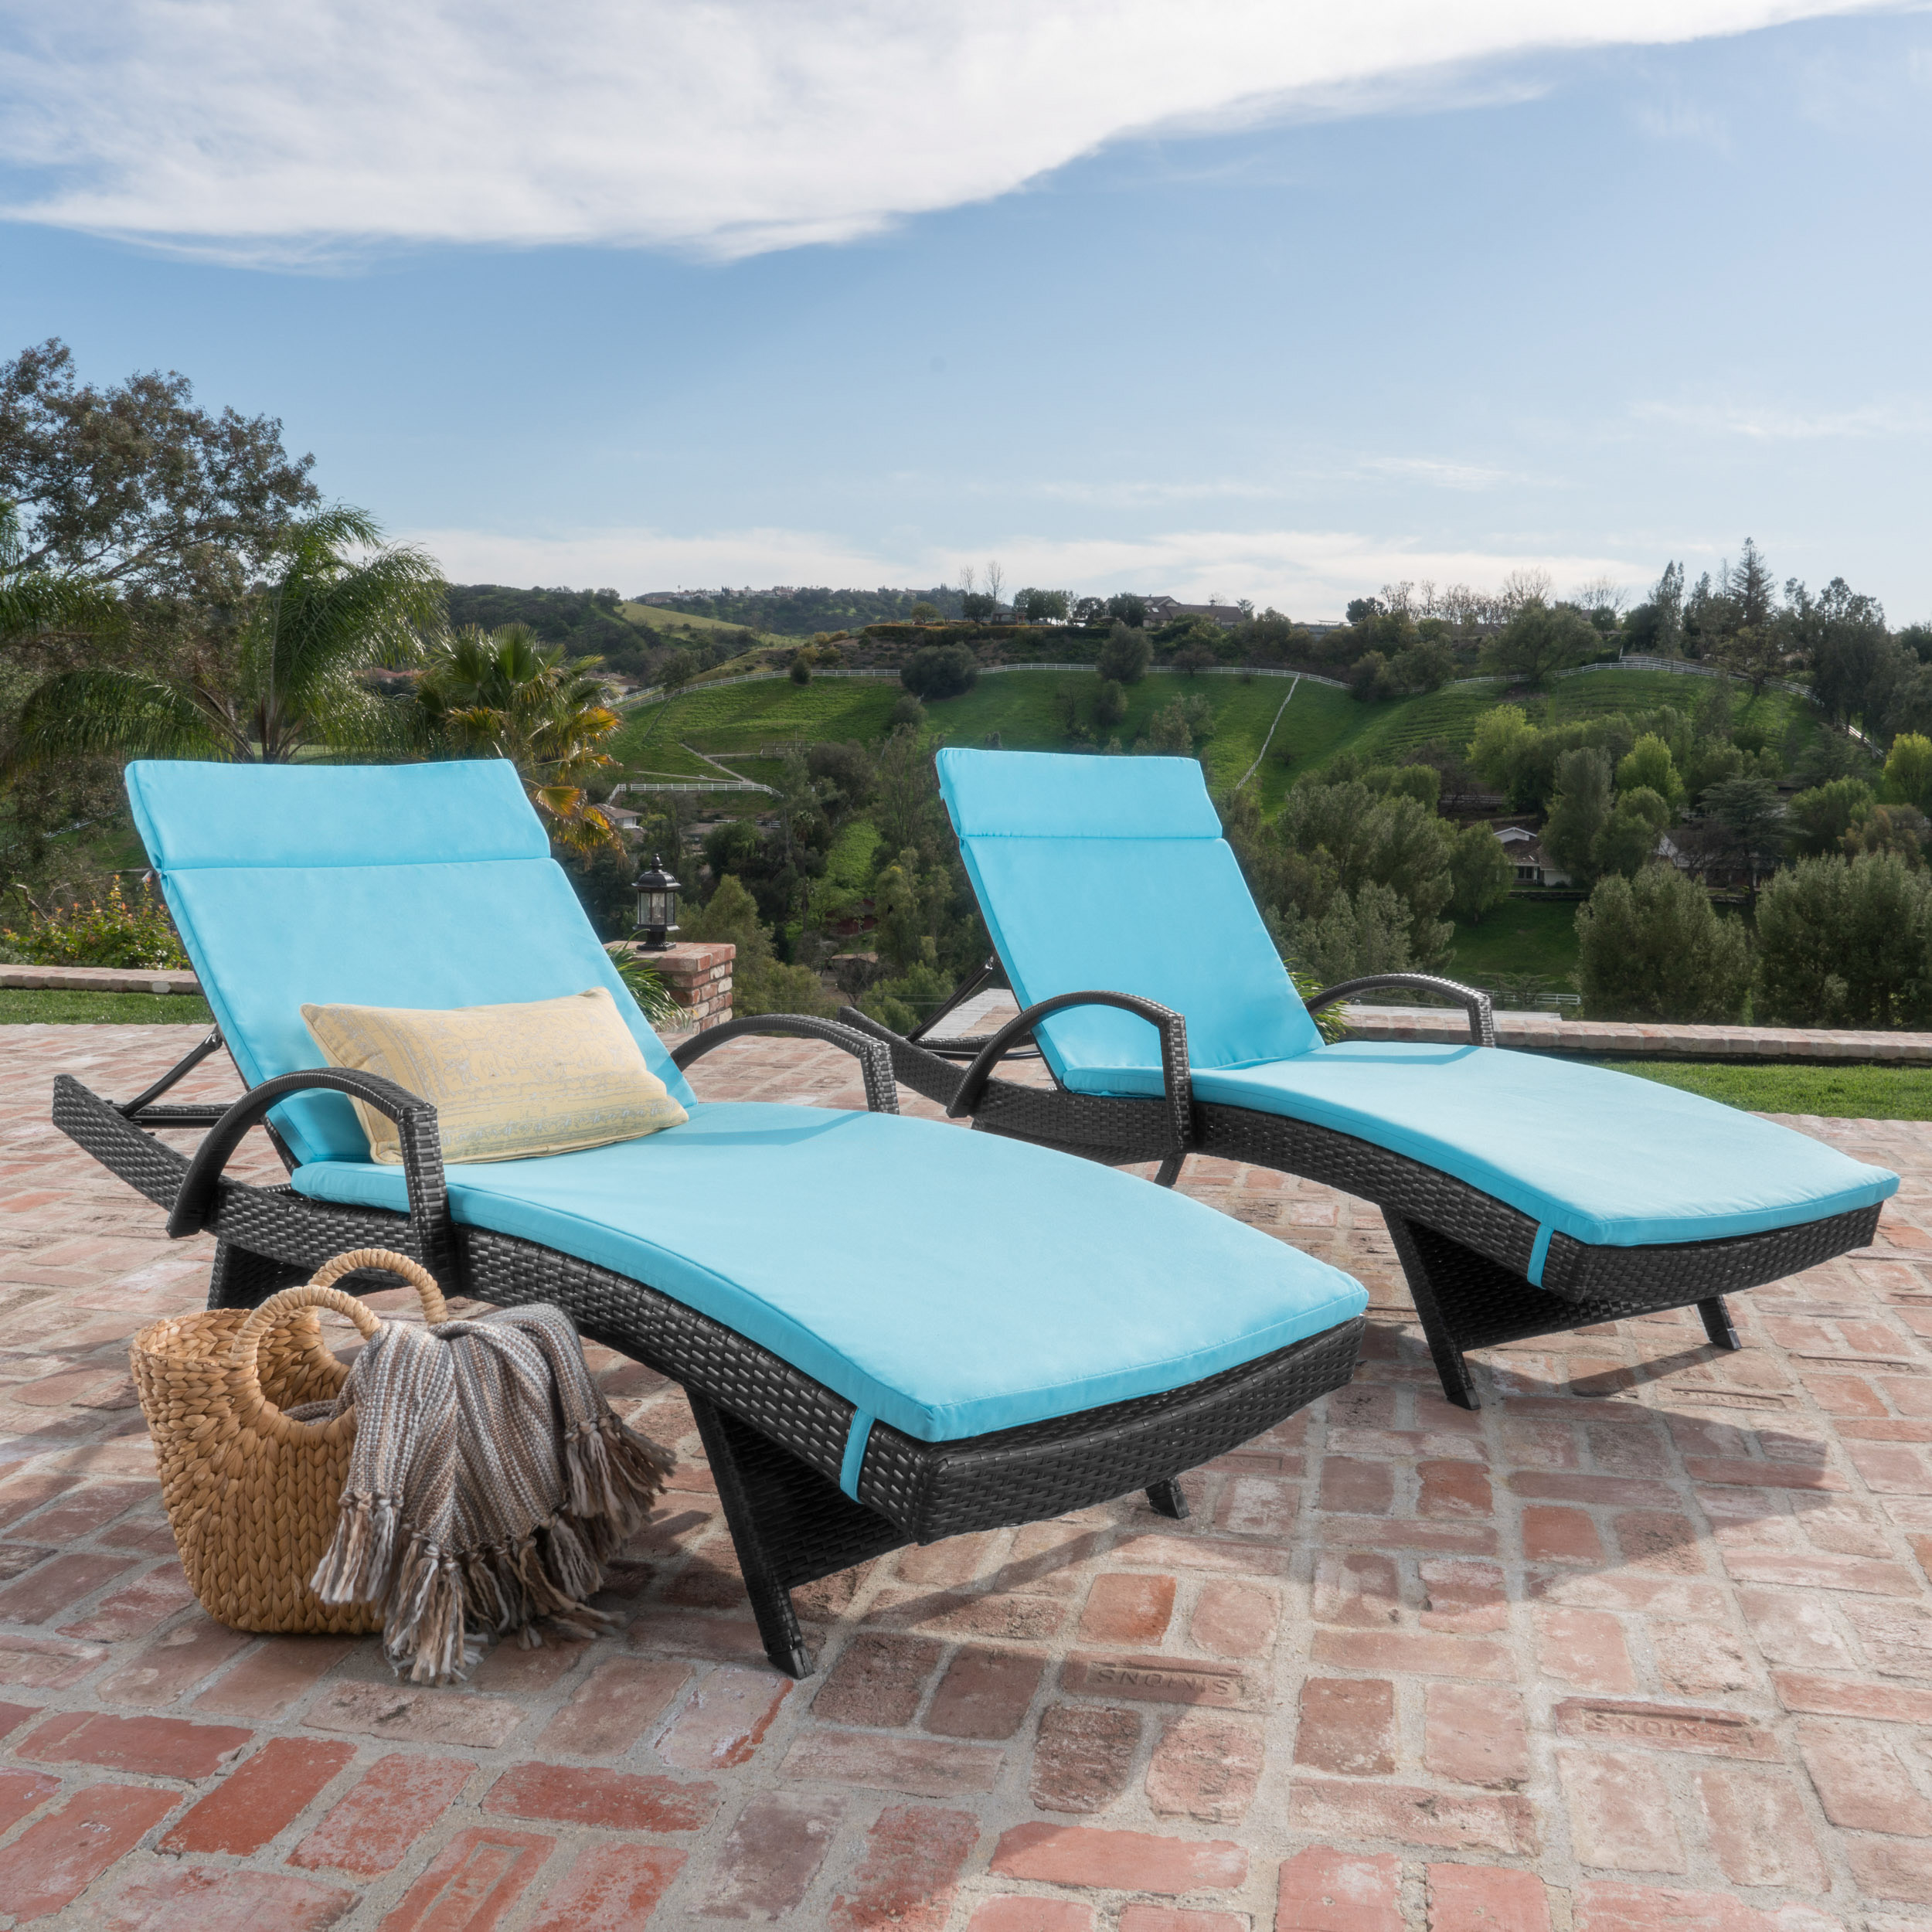 Soleil Outdoor Wicker Chaise Lounges w/ Water Resistant Cushions (Set of 2) (2)